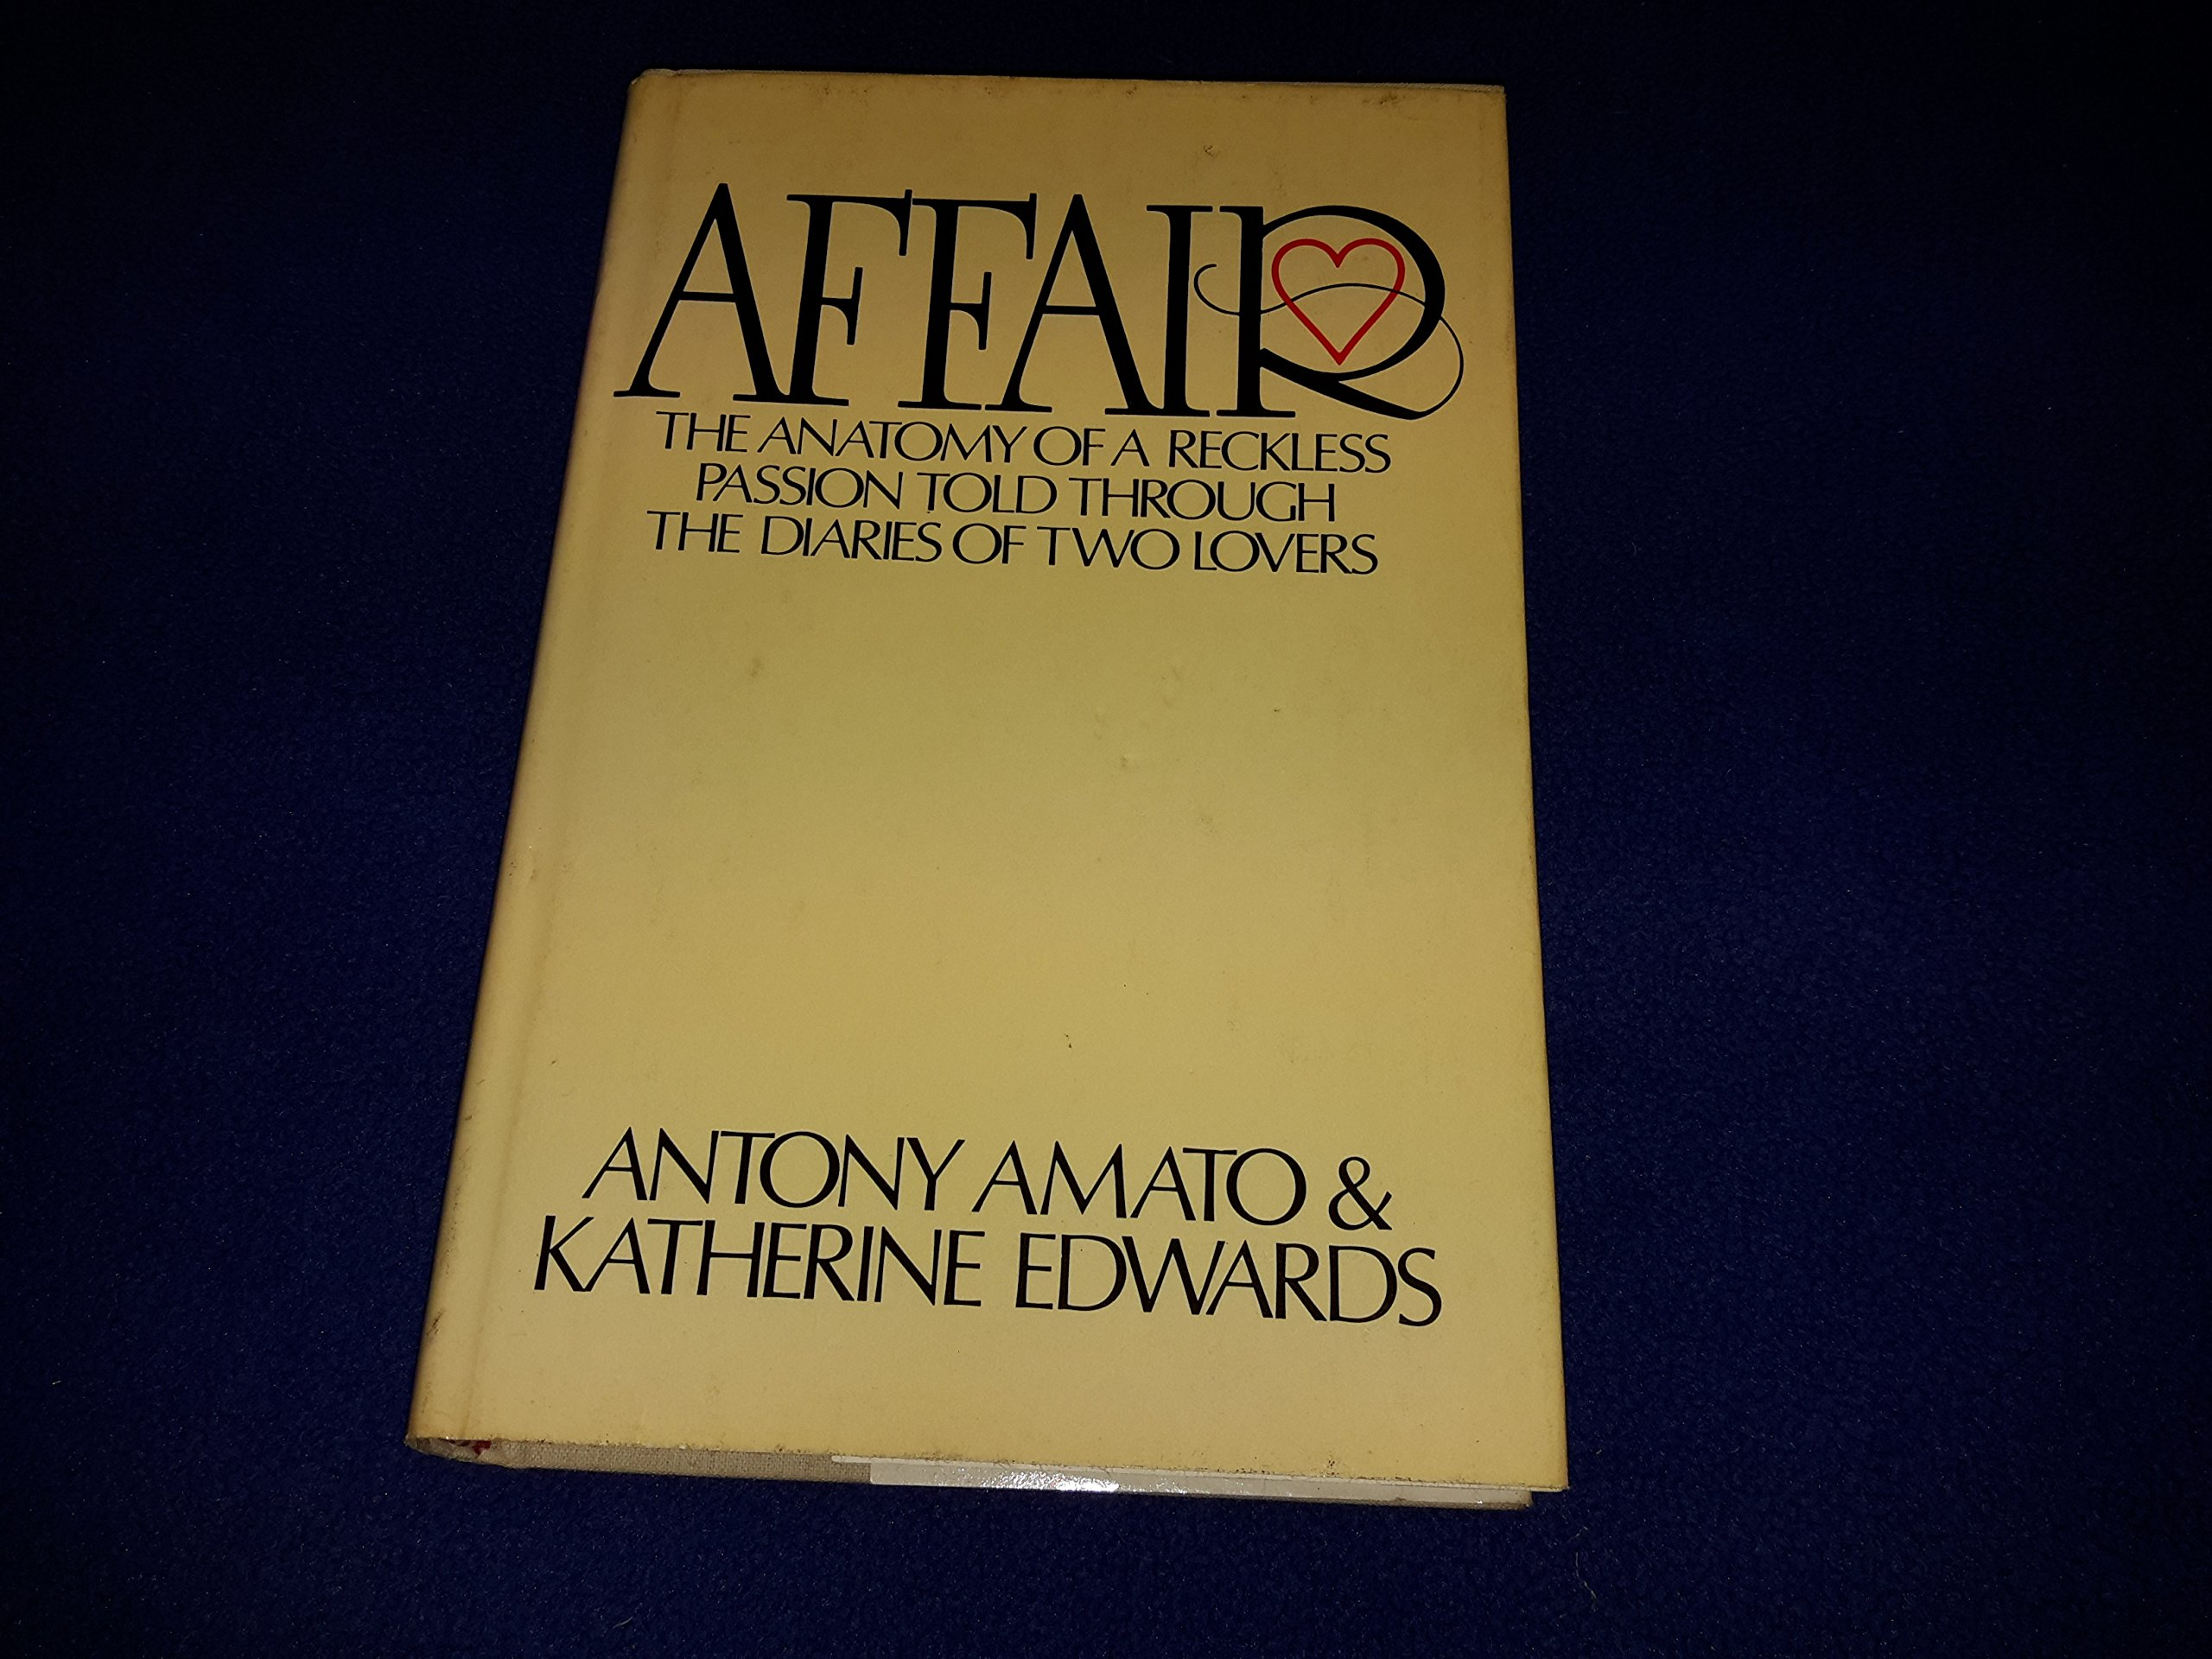 Affair. The Anatomy of a Reckless Passion told through The Diaries ...